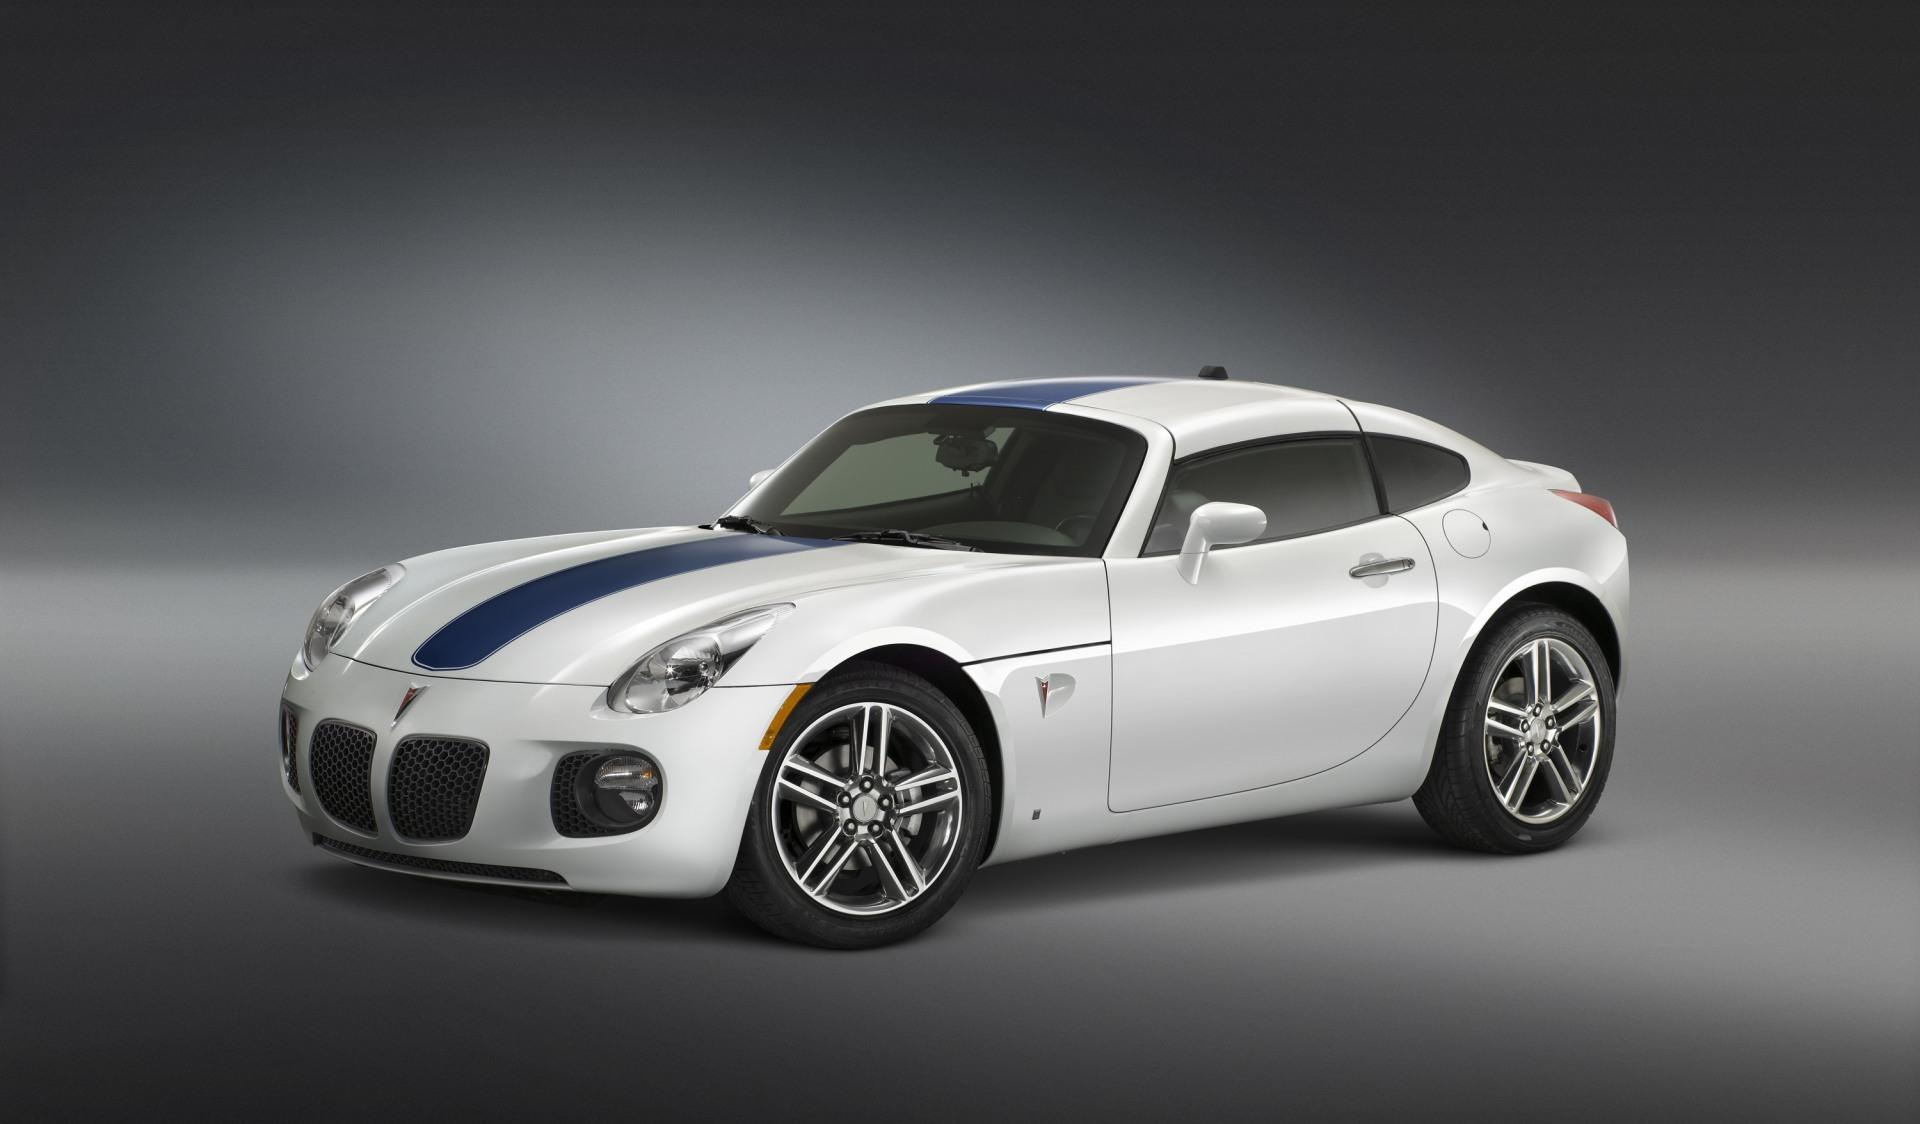 2009 Pontiac Solstice GXP Coupe Concept News and Information